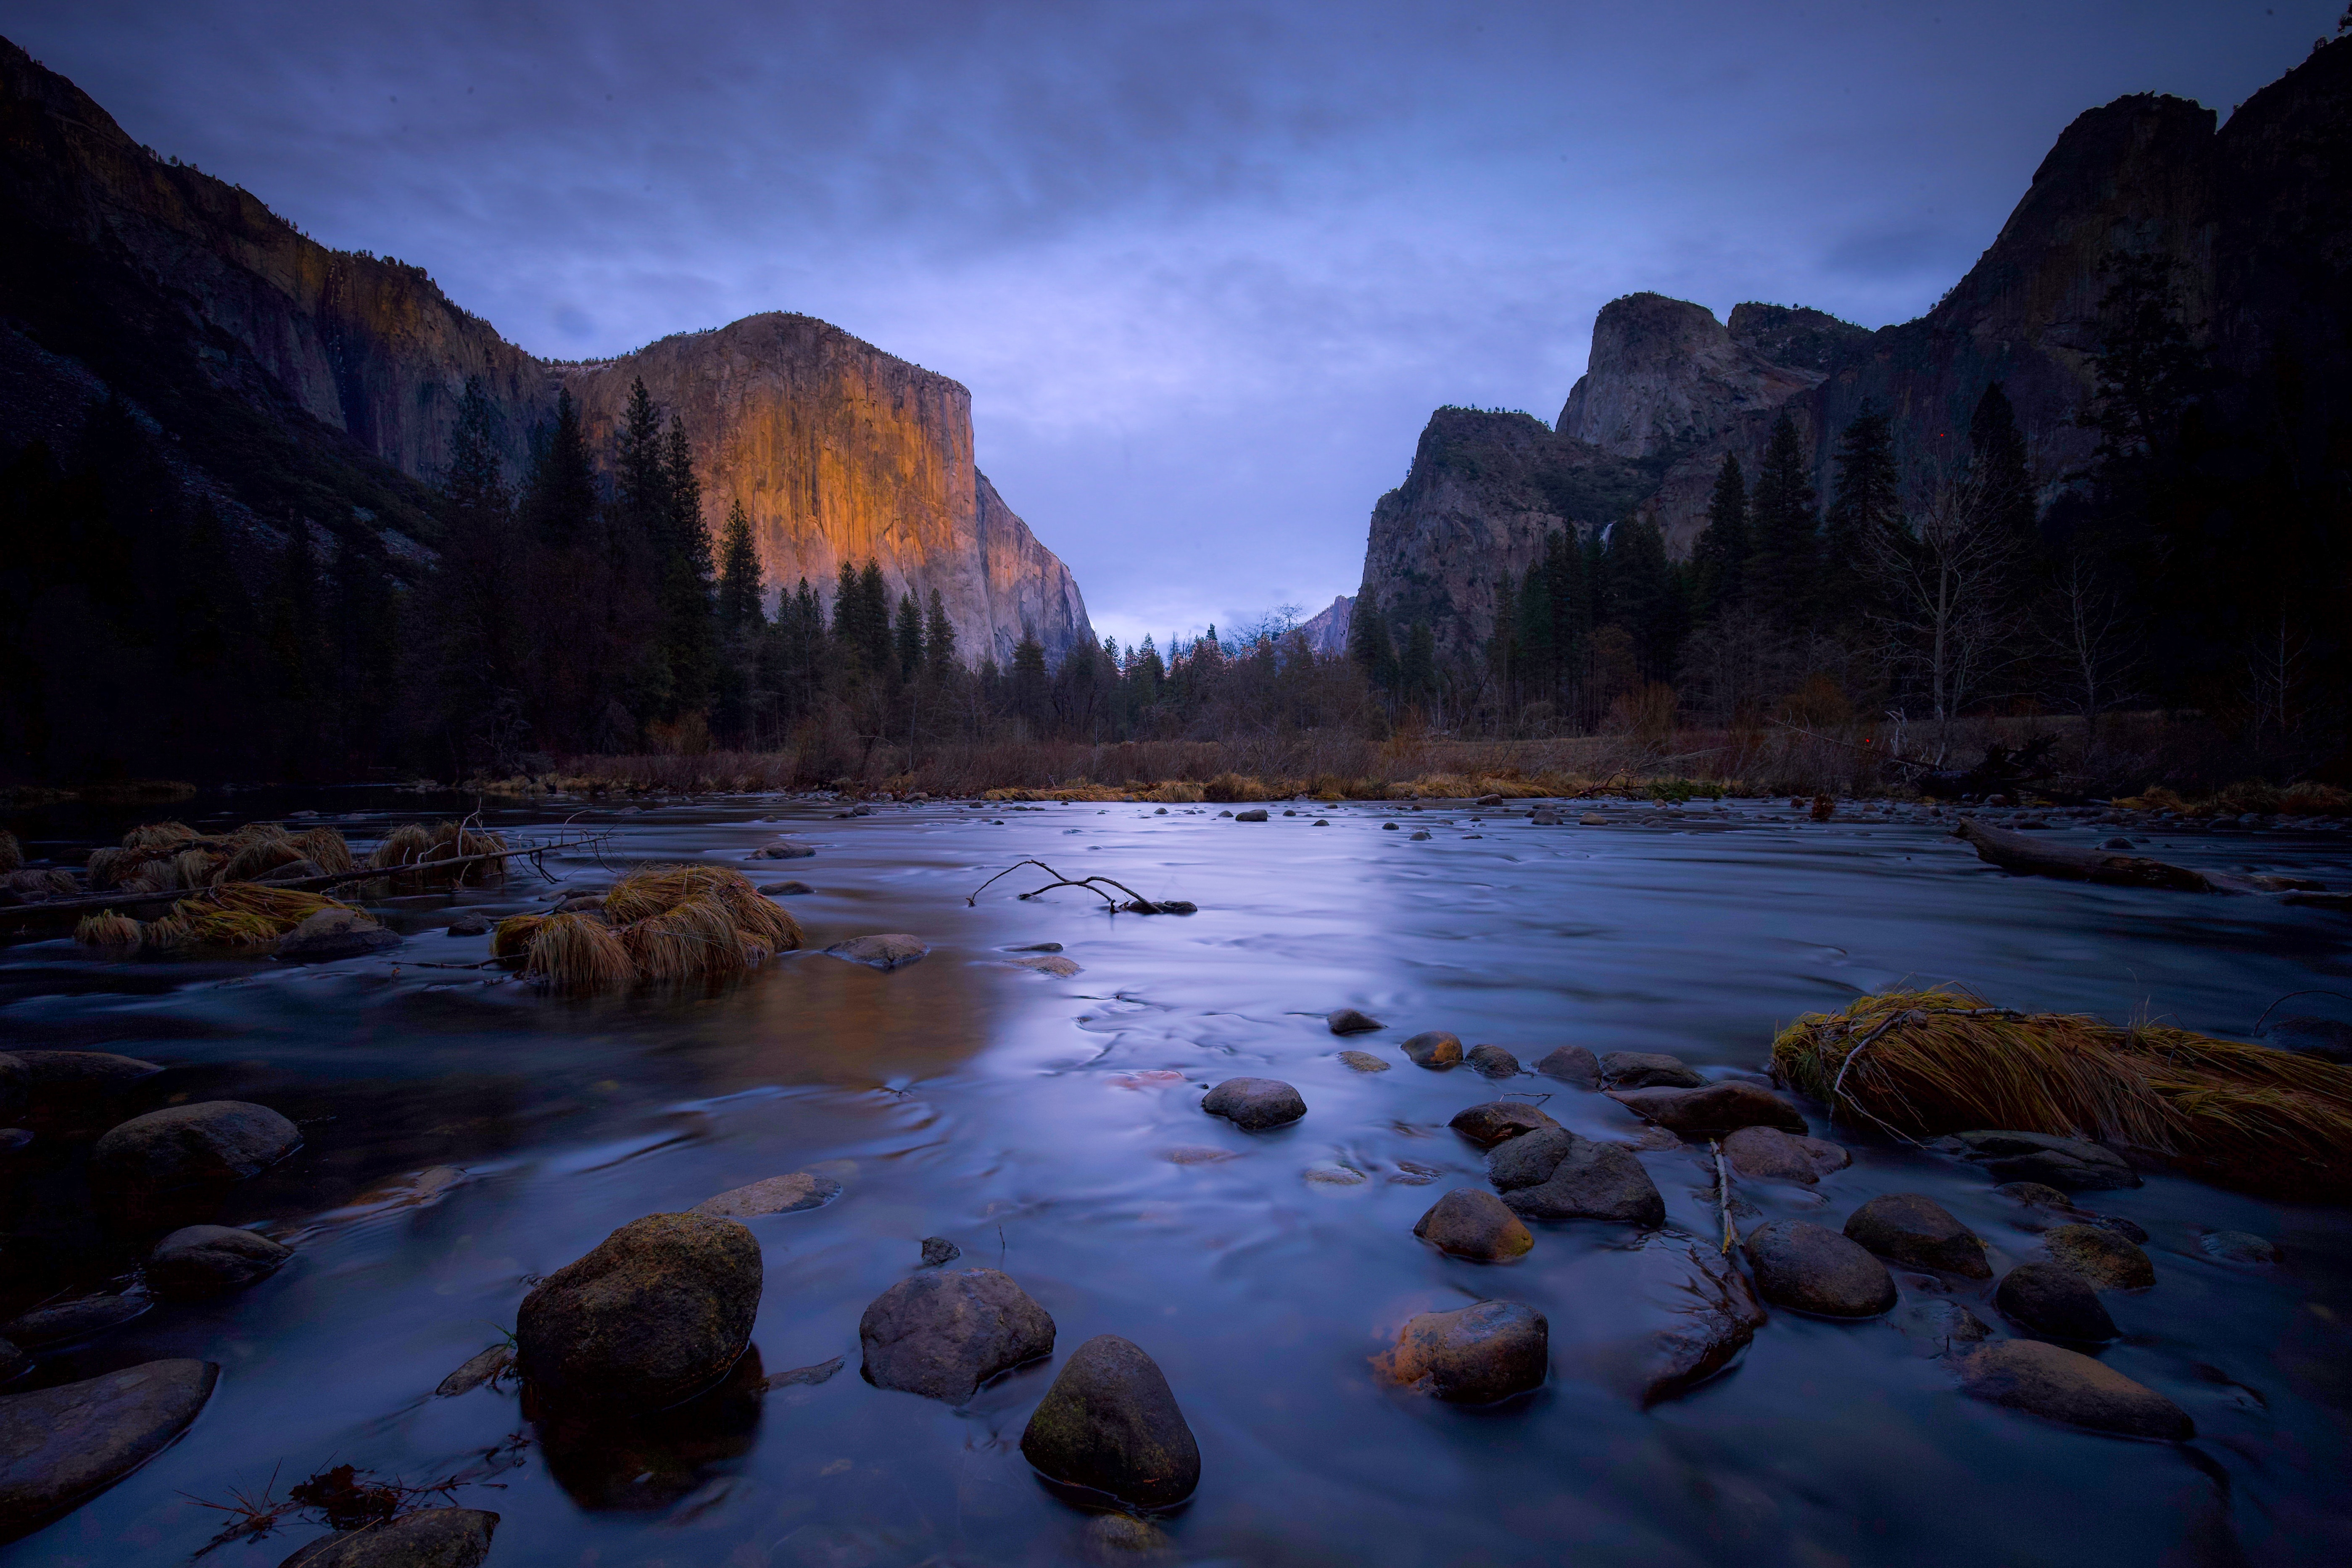 78887 download wallpaper Nature, Rivers, Stones, Trees, Mountains screensavers and pictures for free